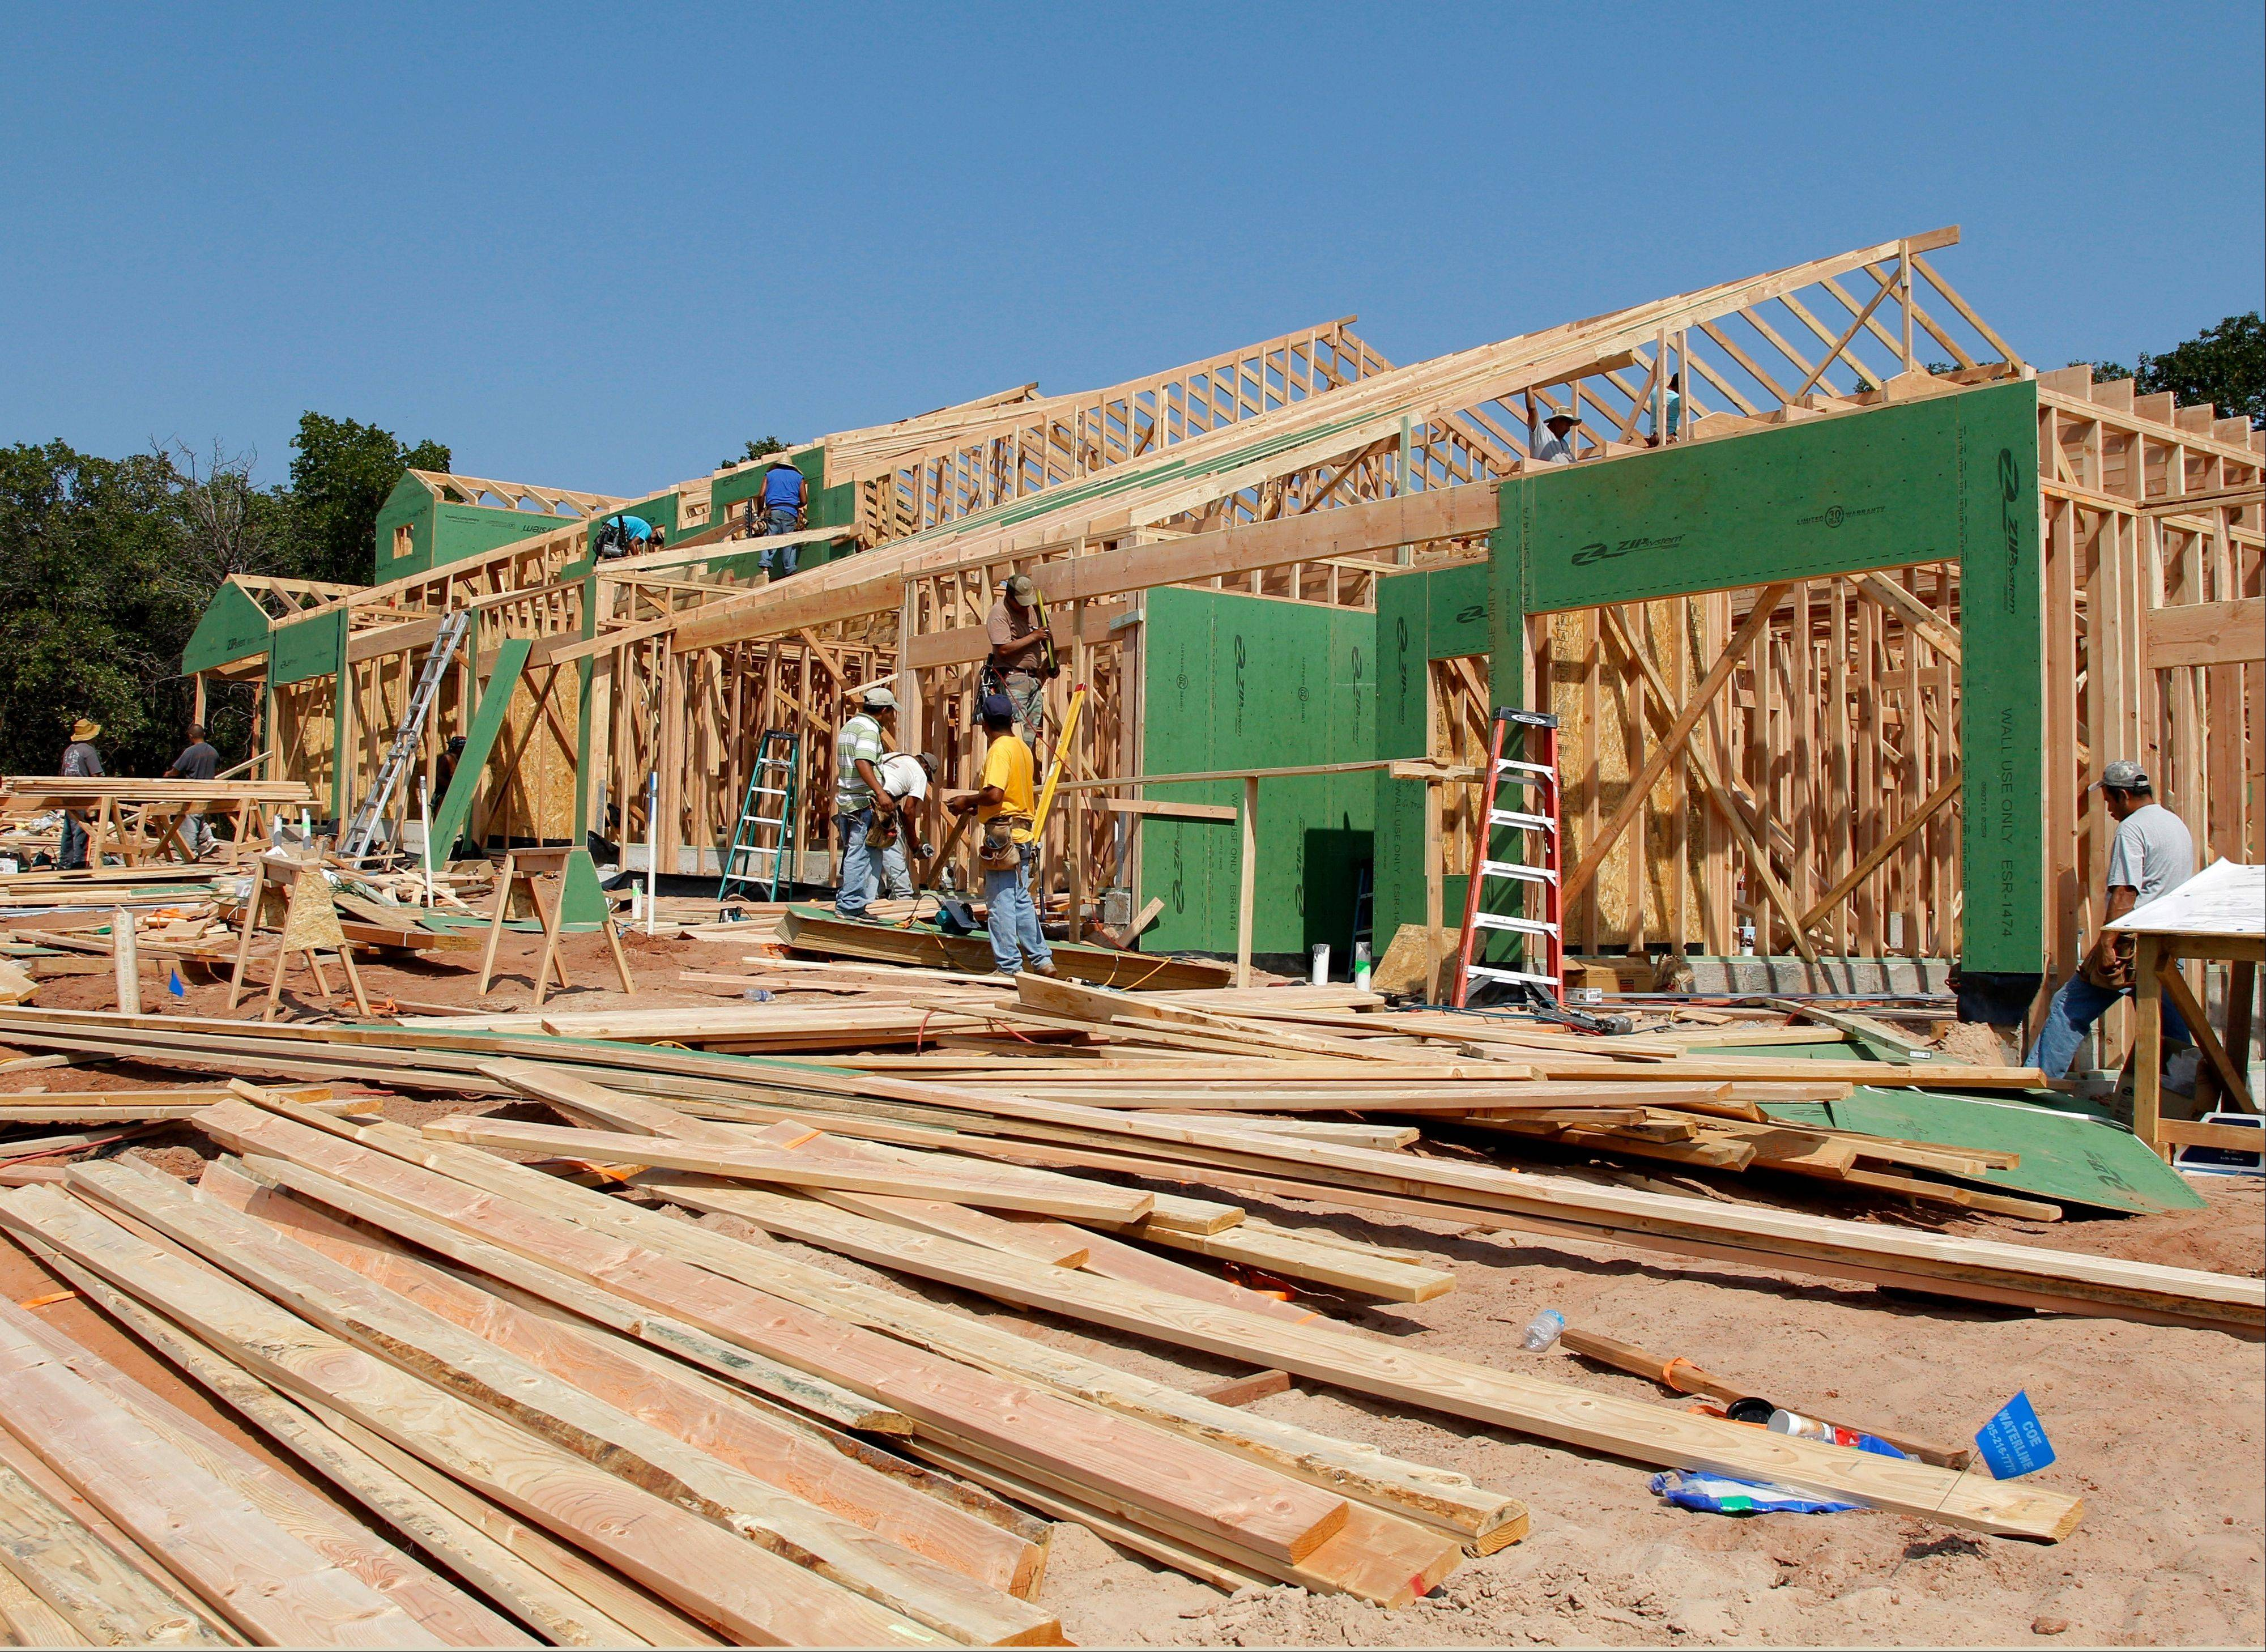 New homes are under construction in Edmond, Okla. Nearly all regions of the United States are reporting that stronger housing markets have helped boost economic growth since the middle of August, according to a survey relased Wednesday by the Federal Reserve. The Fed says growth improved in 10 of its 12 regional banking districts, while leveling off in one region and slowing in another. Rising home sales helped lift home prices.